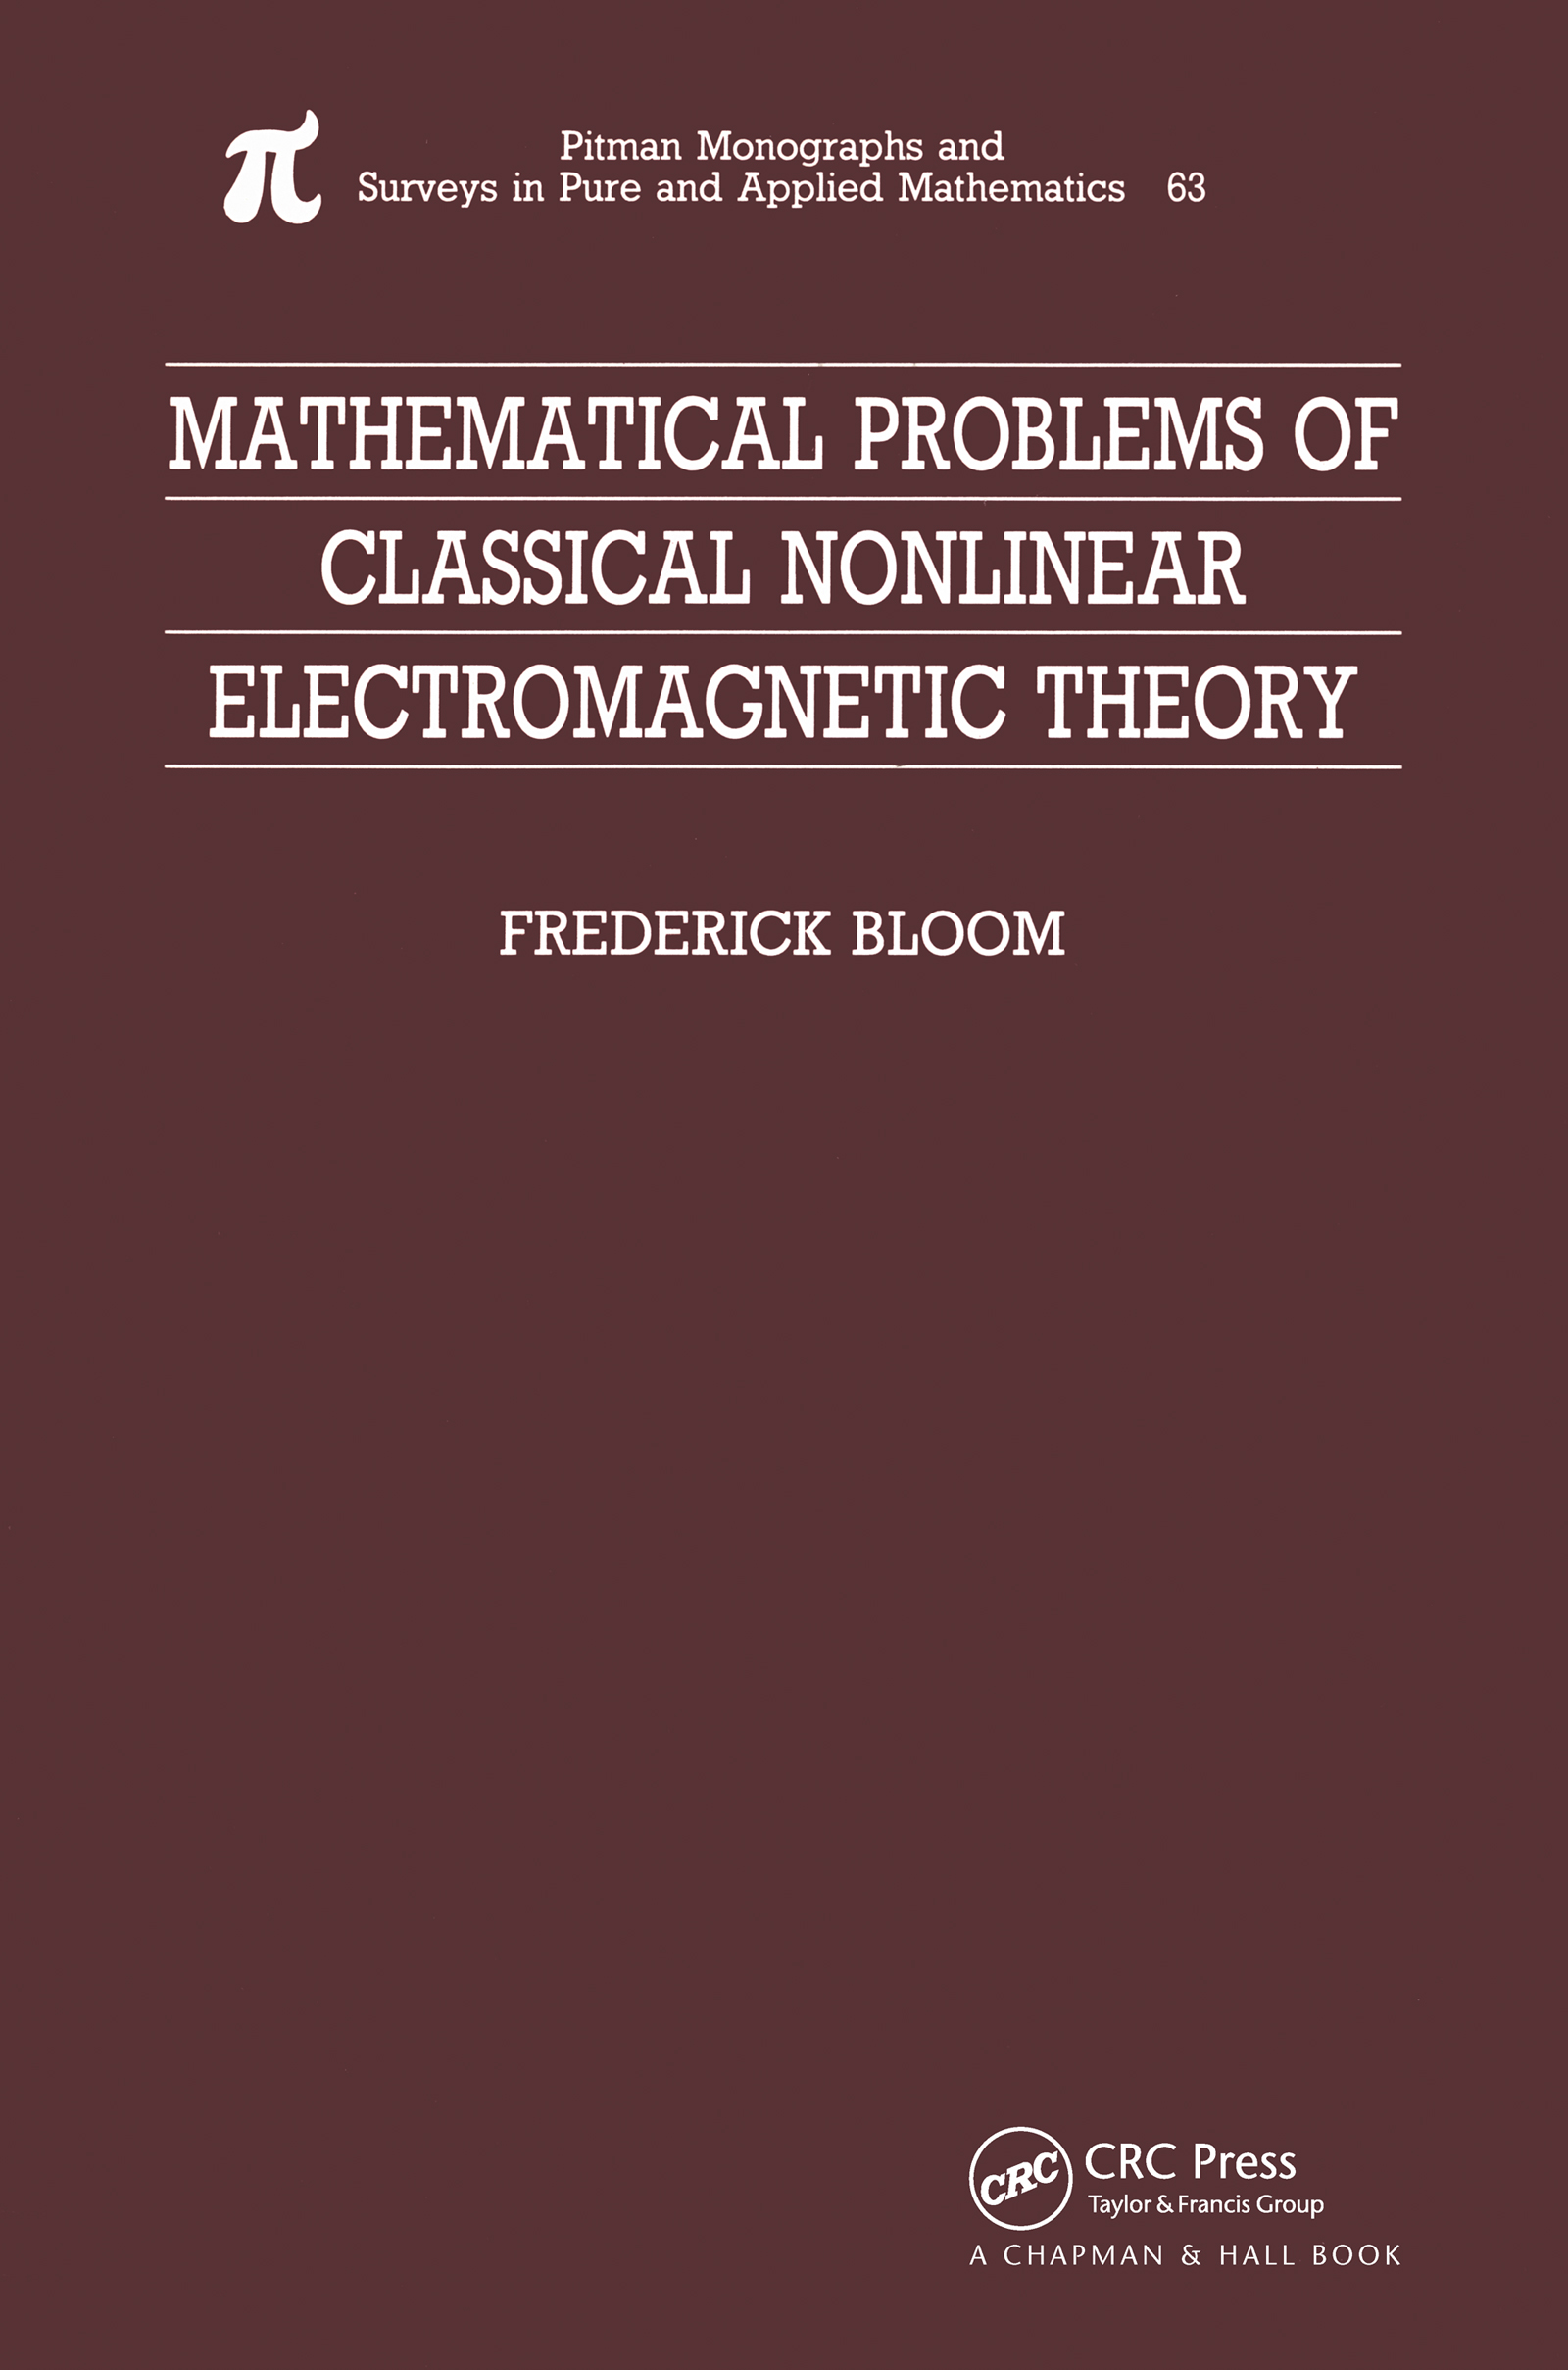 Mathematical Problems of Classical Nonlinear Electromagnetic Theory: 1st Edition (Hardback) book cover